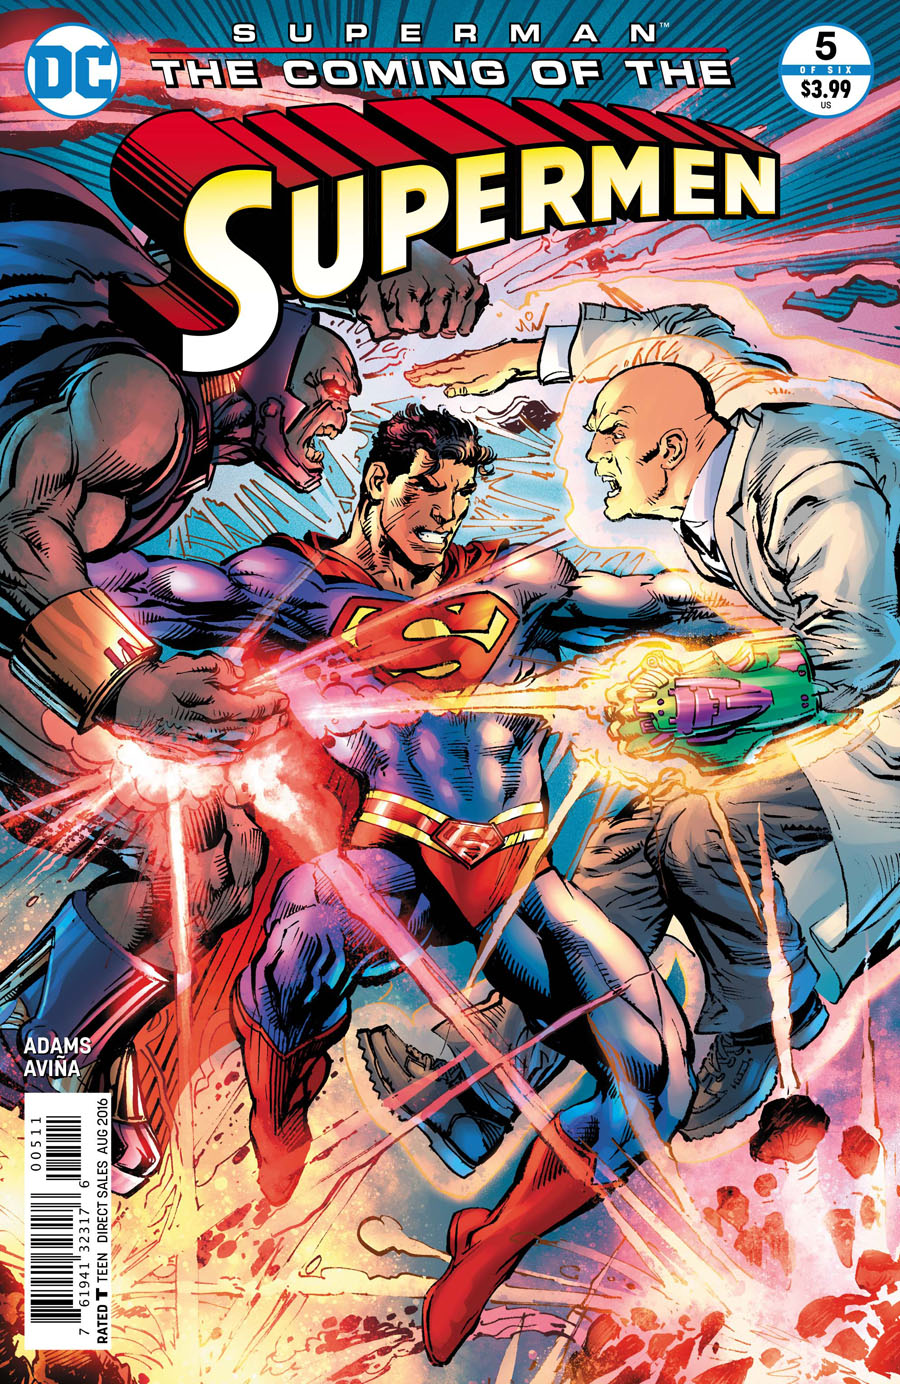 Superman The Coming Of The Supermen #5